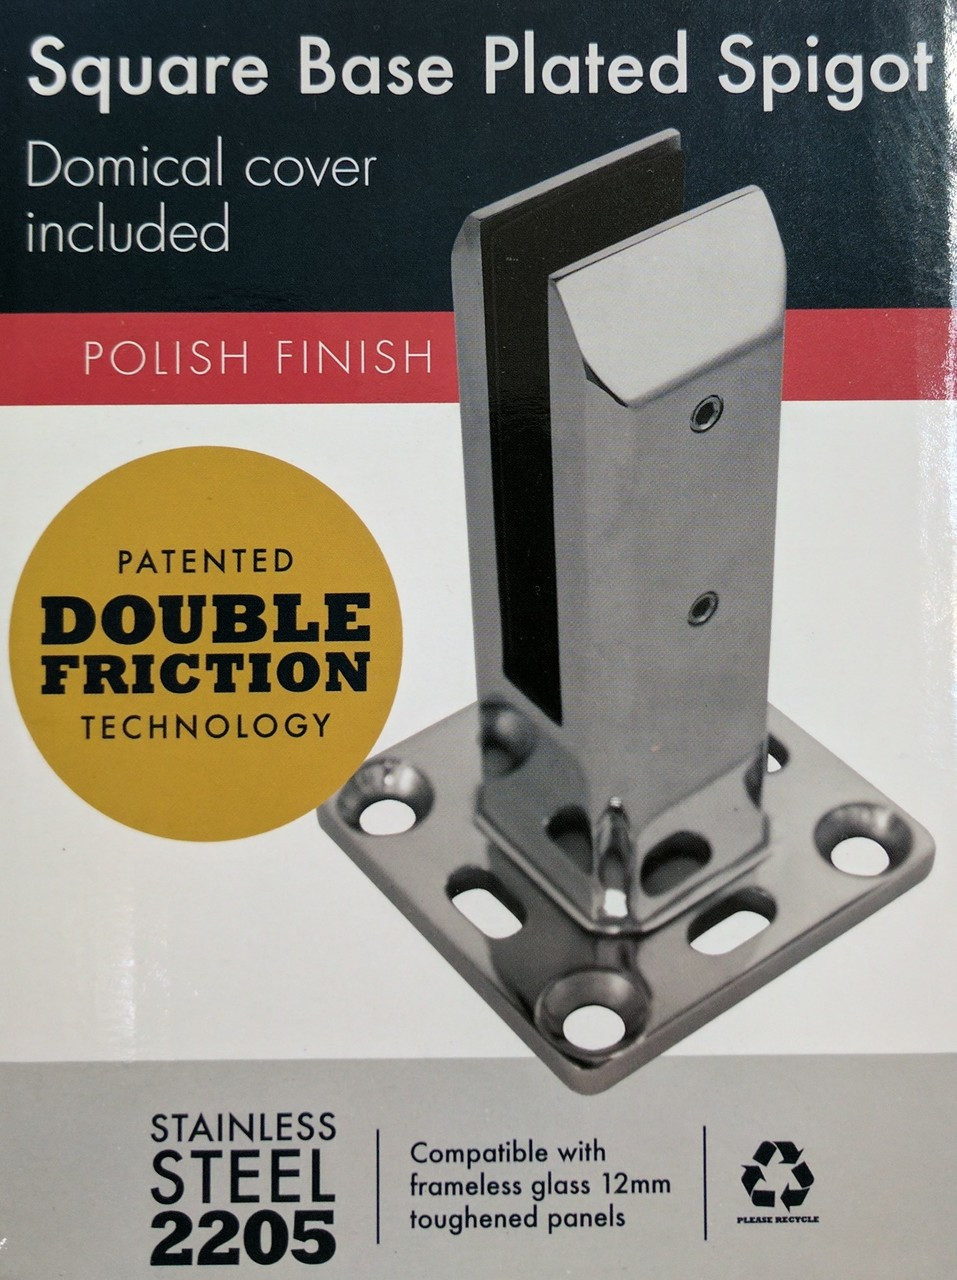 2205 Stainless Steel 'Double Friction' Spigot for Frameless Glass Pool Fencing, to bolt down - Includes Cover.